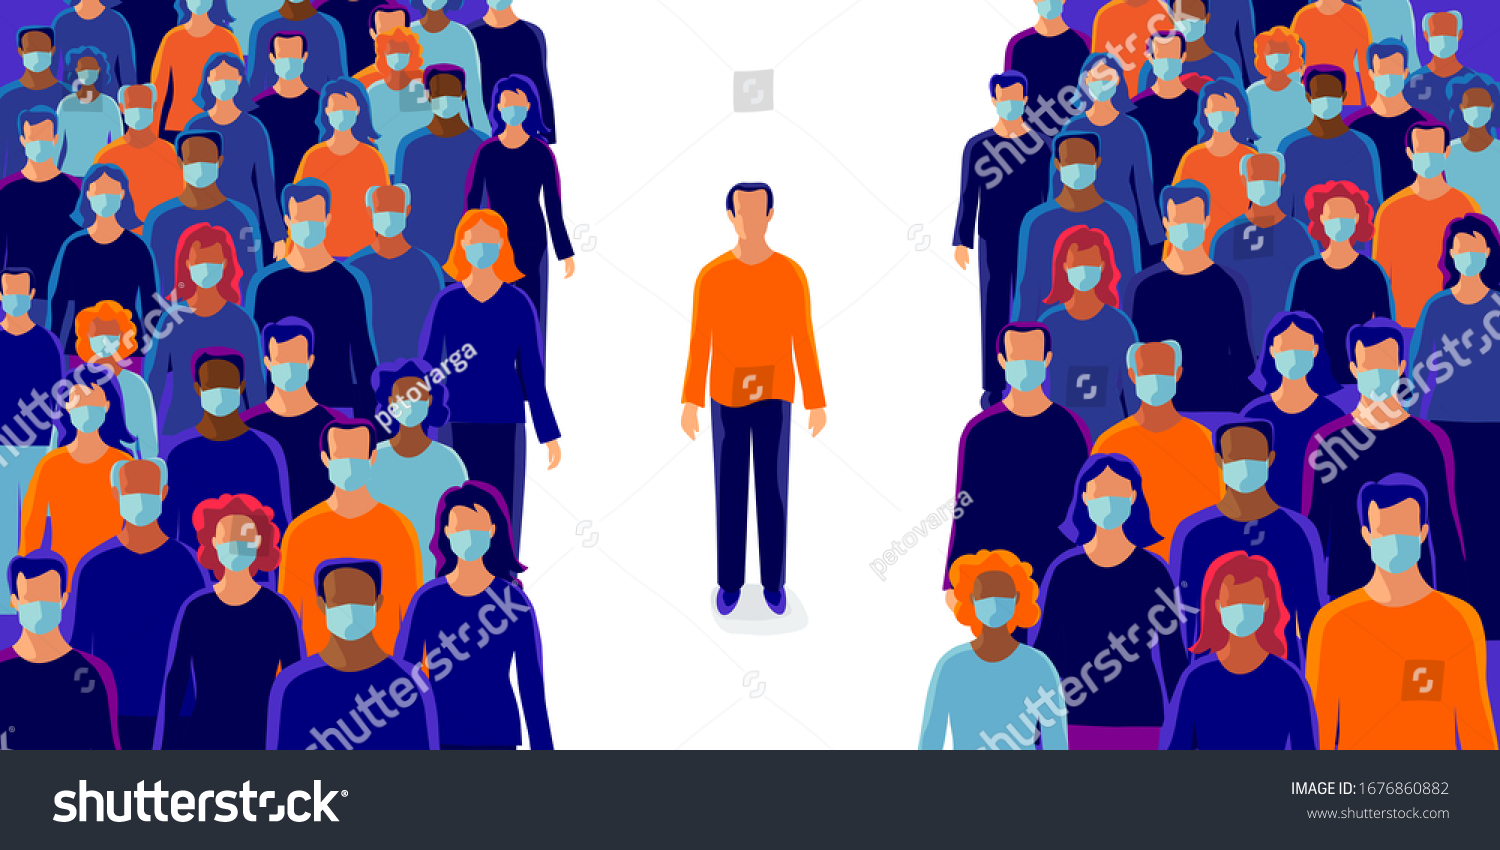 Group of people wearing protection medical face mask to protect and prevent virus, disease, flu, air pollution, contamination, corona. Man person alone standing in isolation in distance from others.  #1676860882